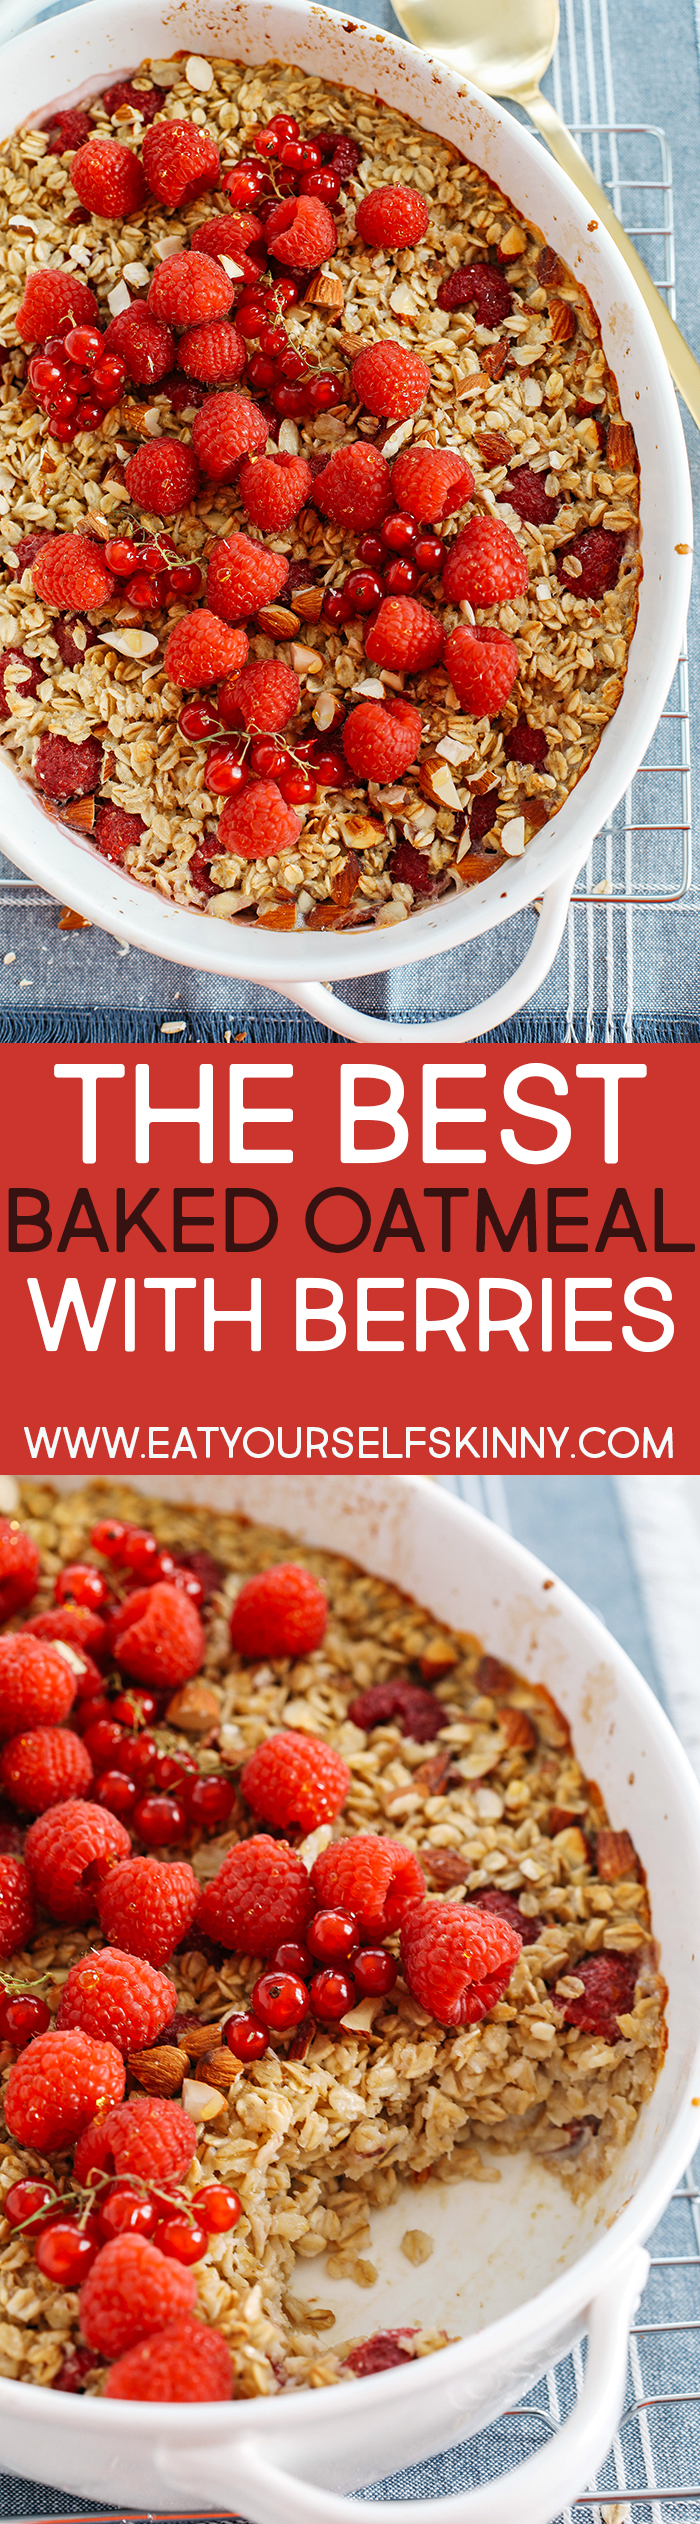 Start your morning off with this delicious Raspberry Almond Baked Oatmeal that is filling, wholesome and naturally sweetened for a perfect healthy breakfast!